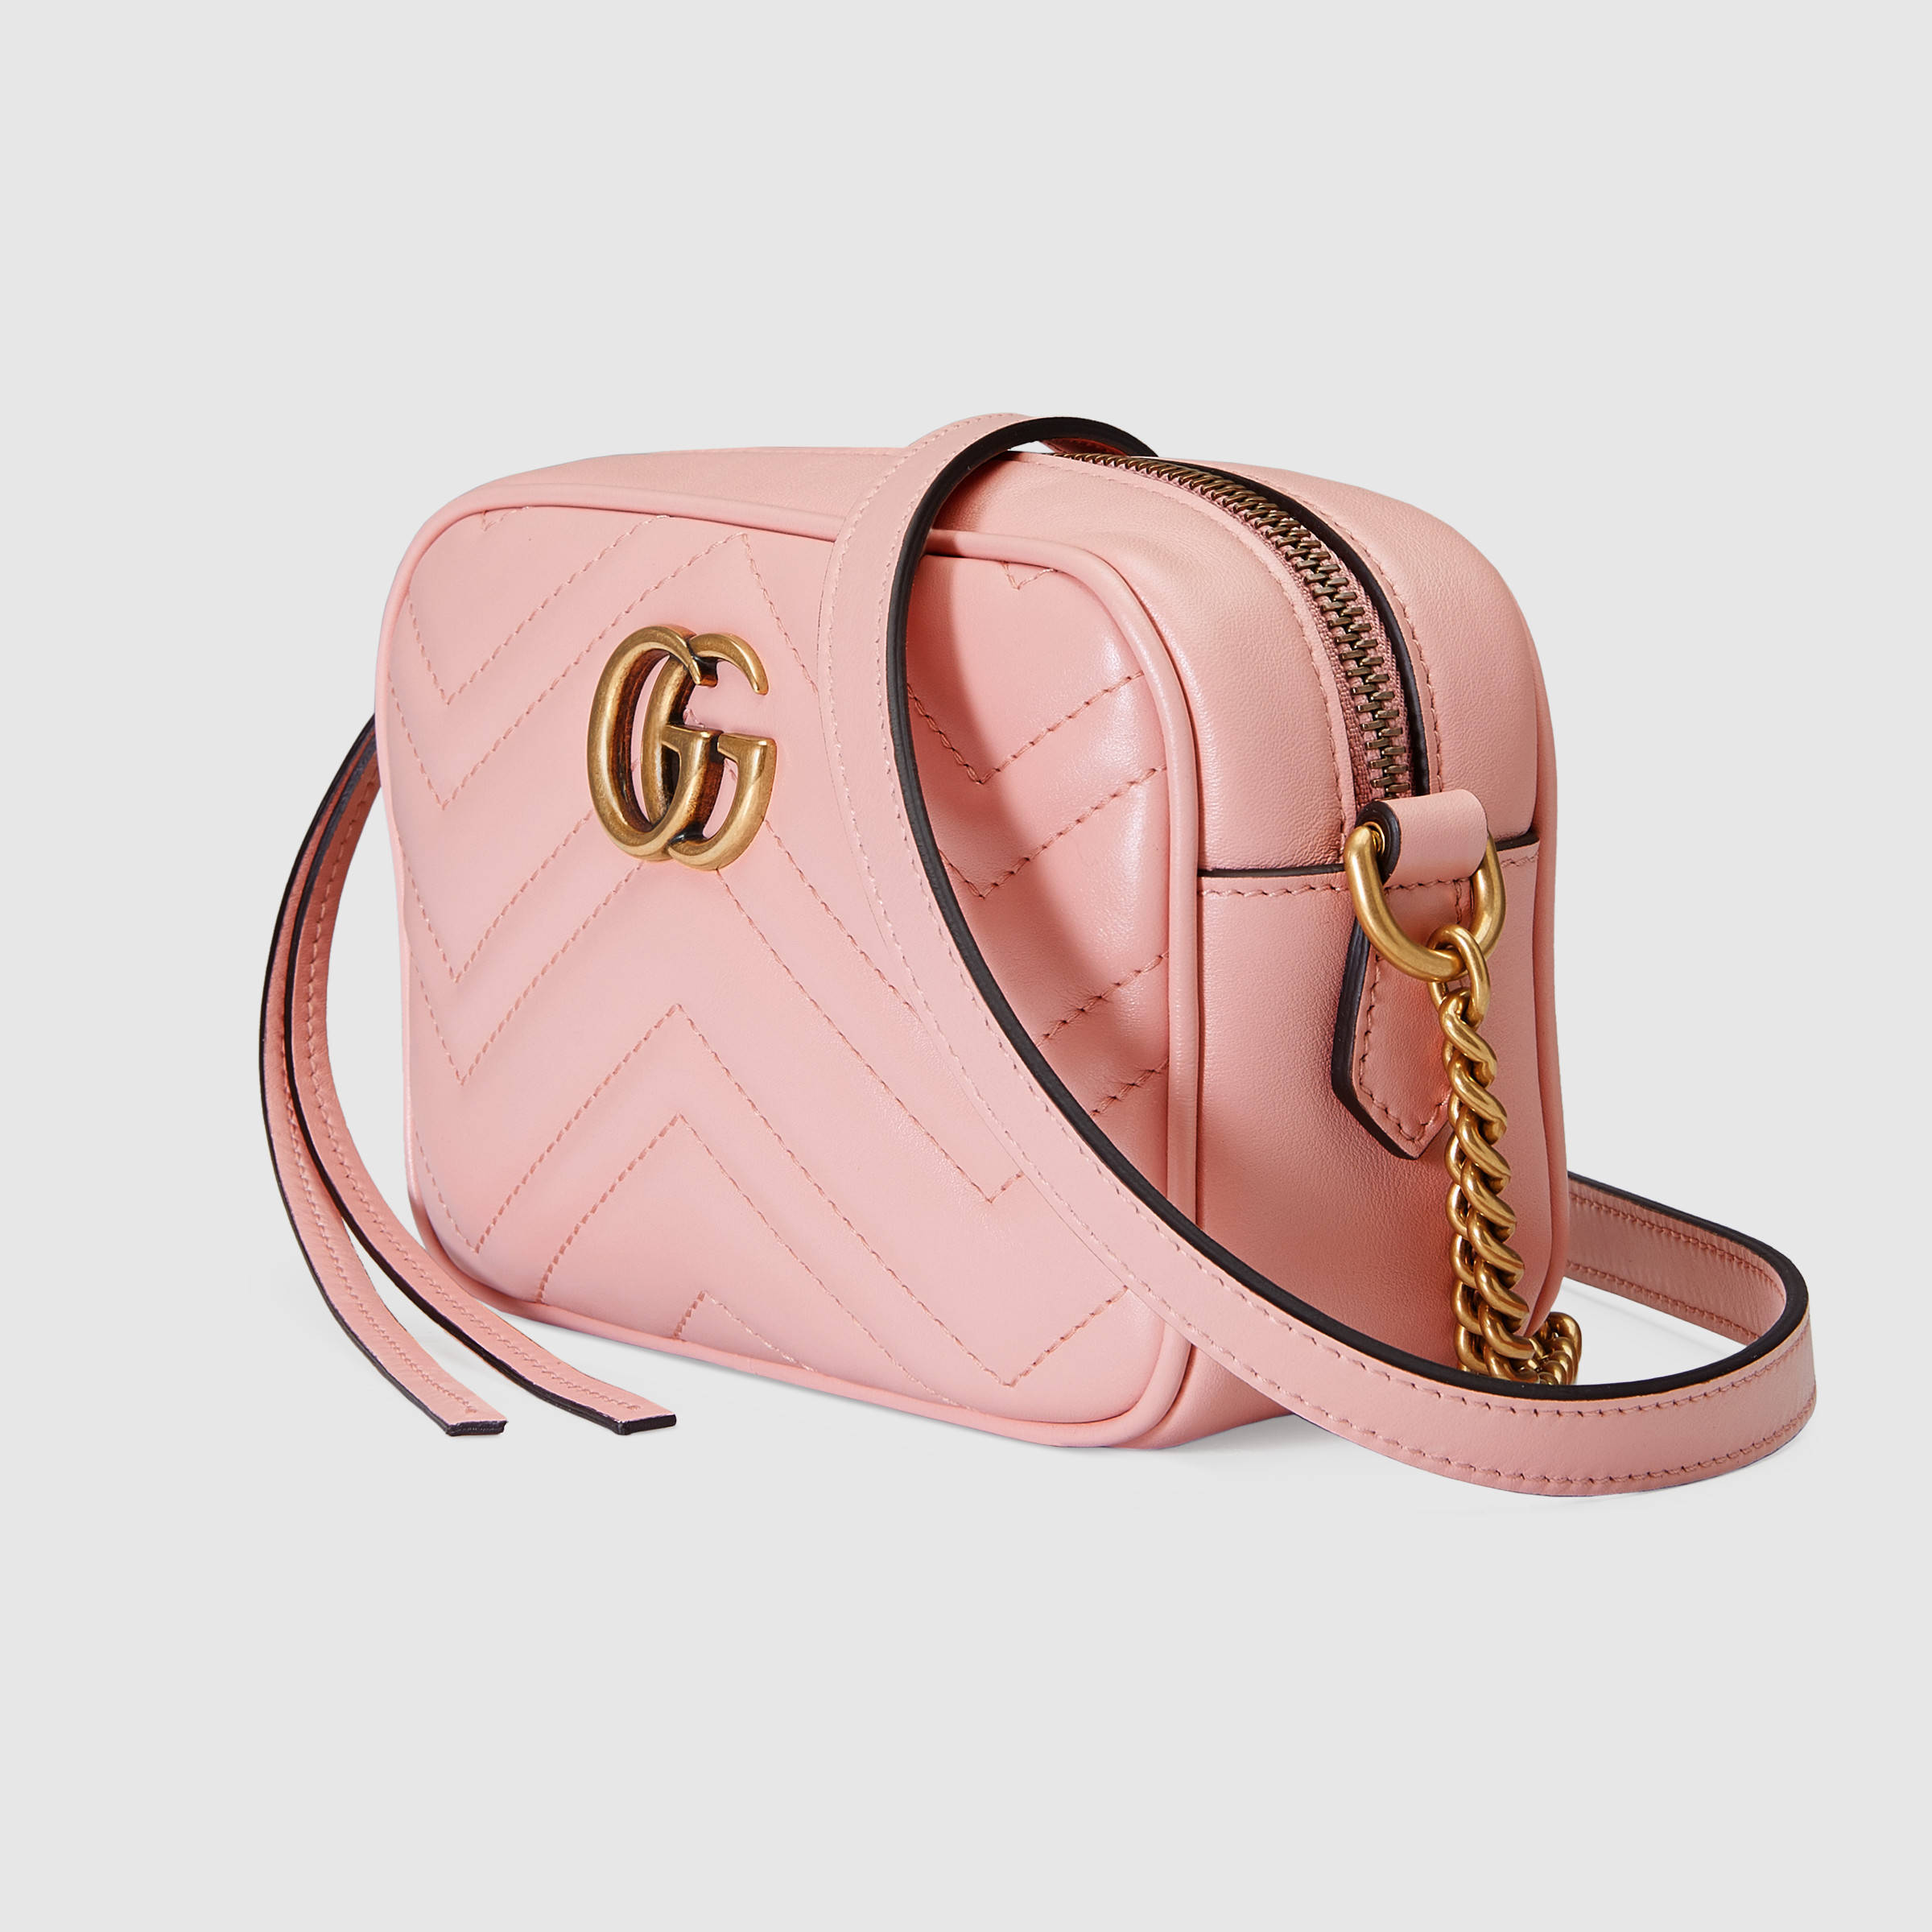 【グッチ】Gg Marmont Matelass? Mini Bag ショルダー